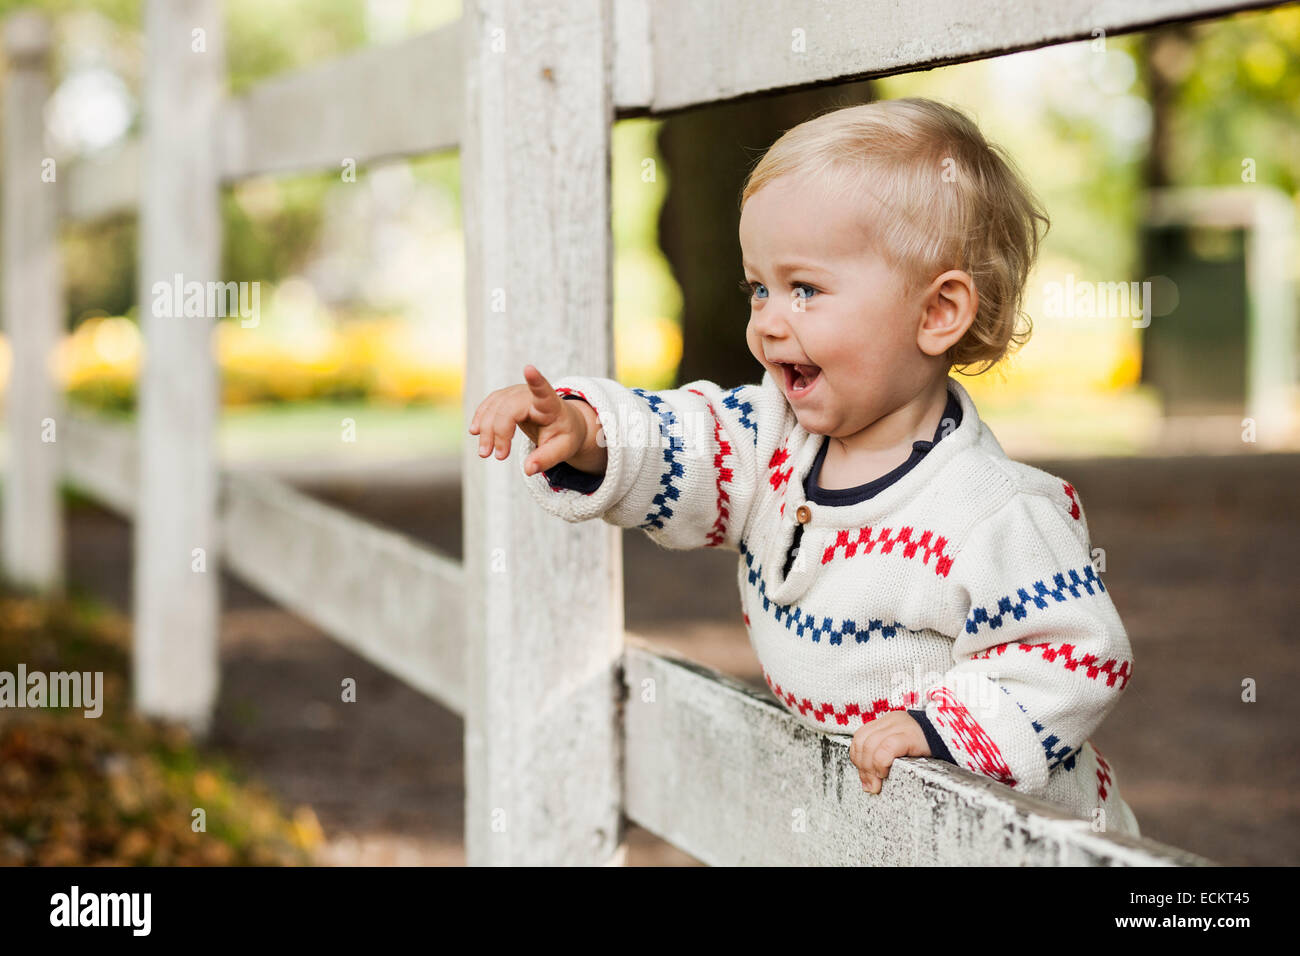 Happy baby girl pointing while standing by wooden fence in park - Stock Image